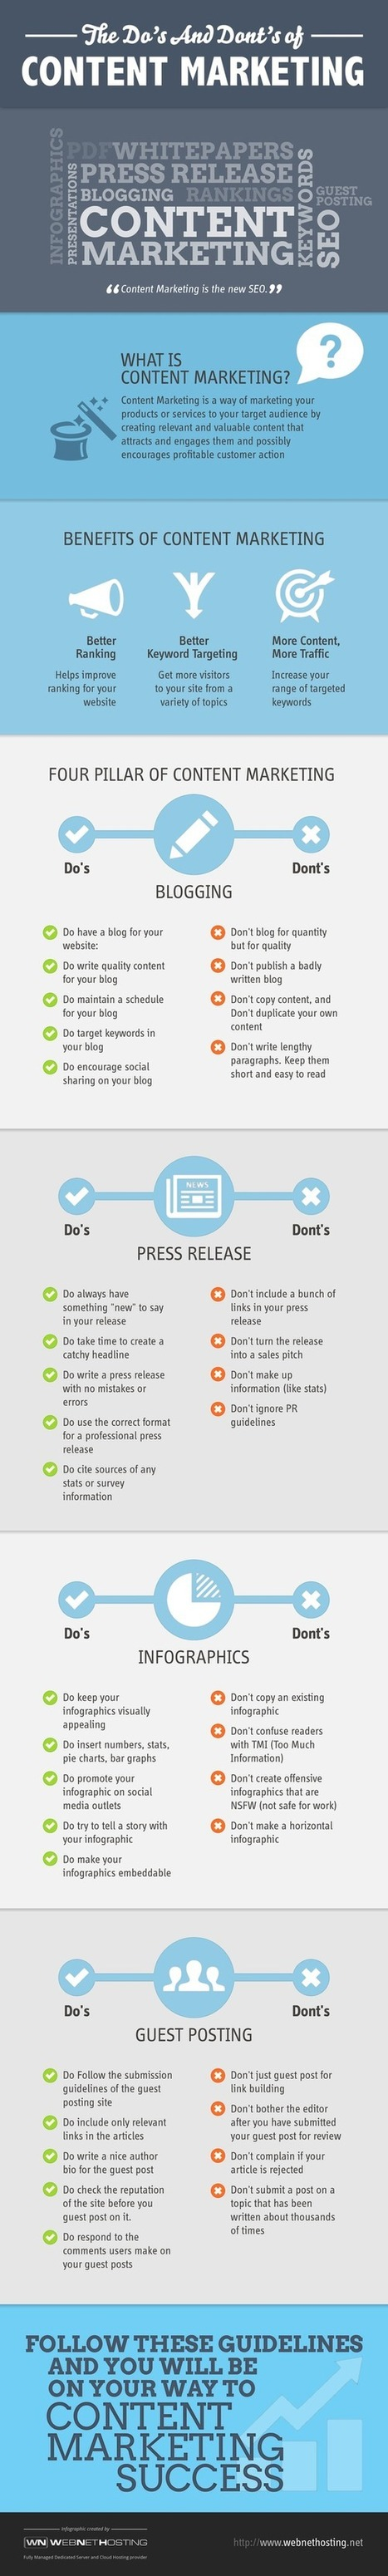 The Do's and Dont's of Content Marketing - Infographic | visualizing social media | Scoop.it